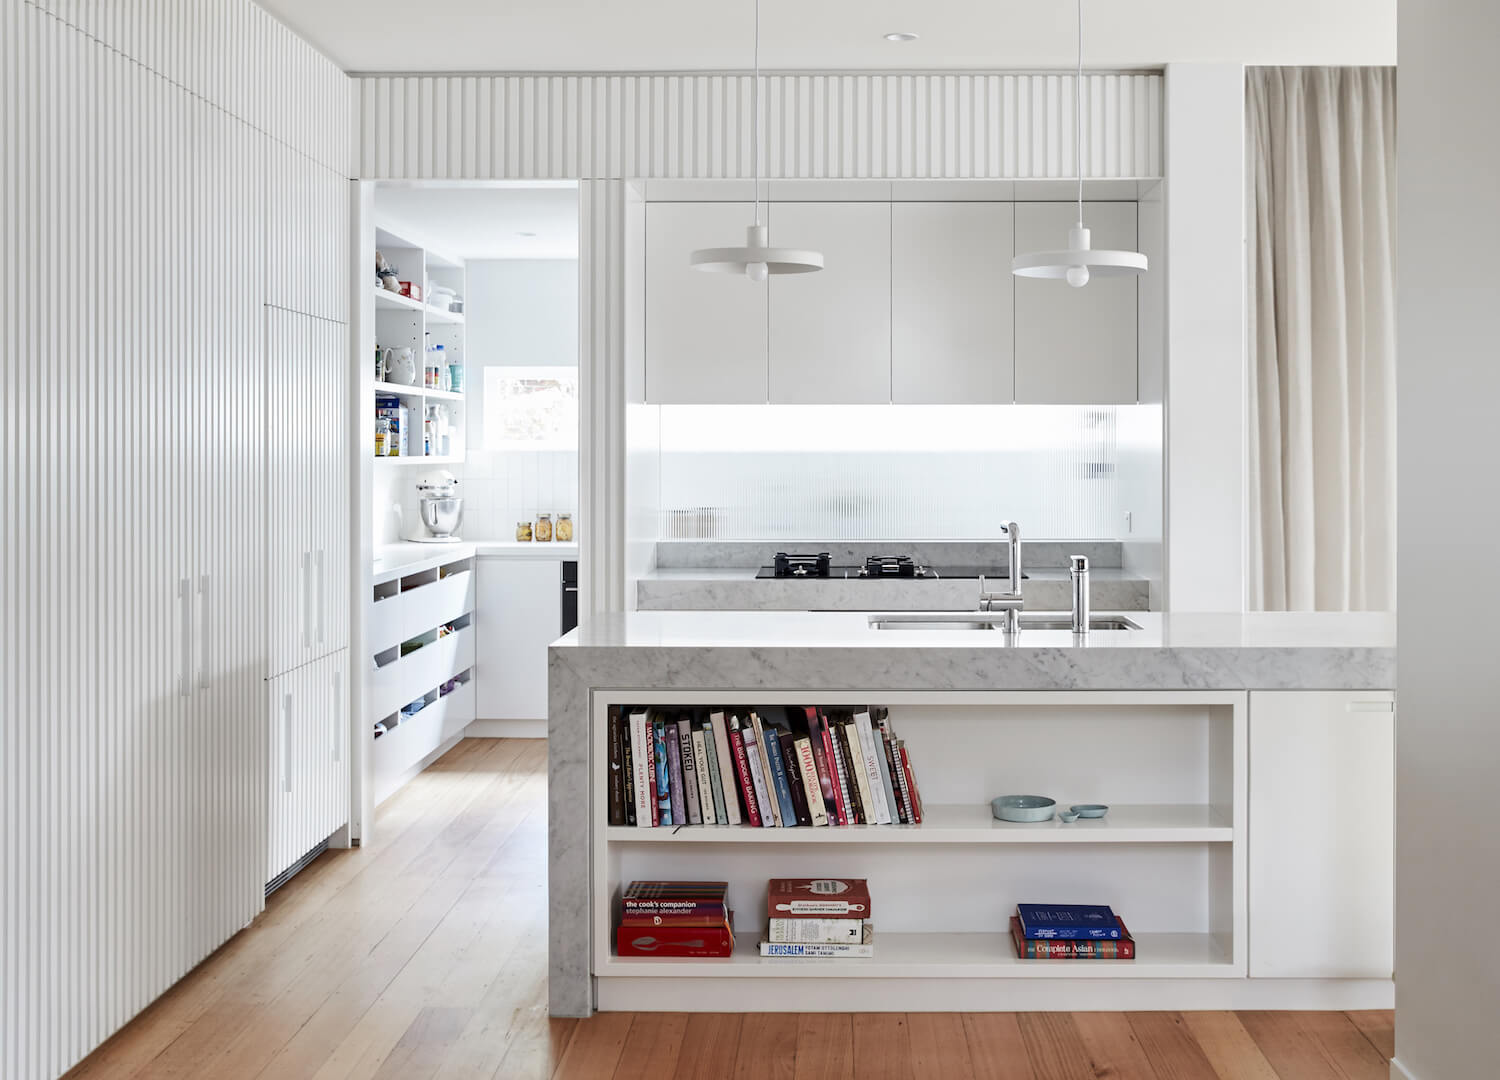 est living australian interiors Architecture Design Holroyd 09 kitchen3